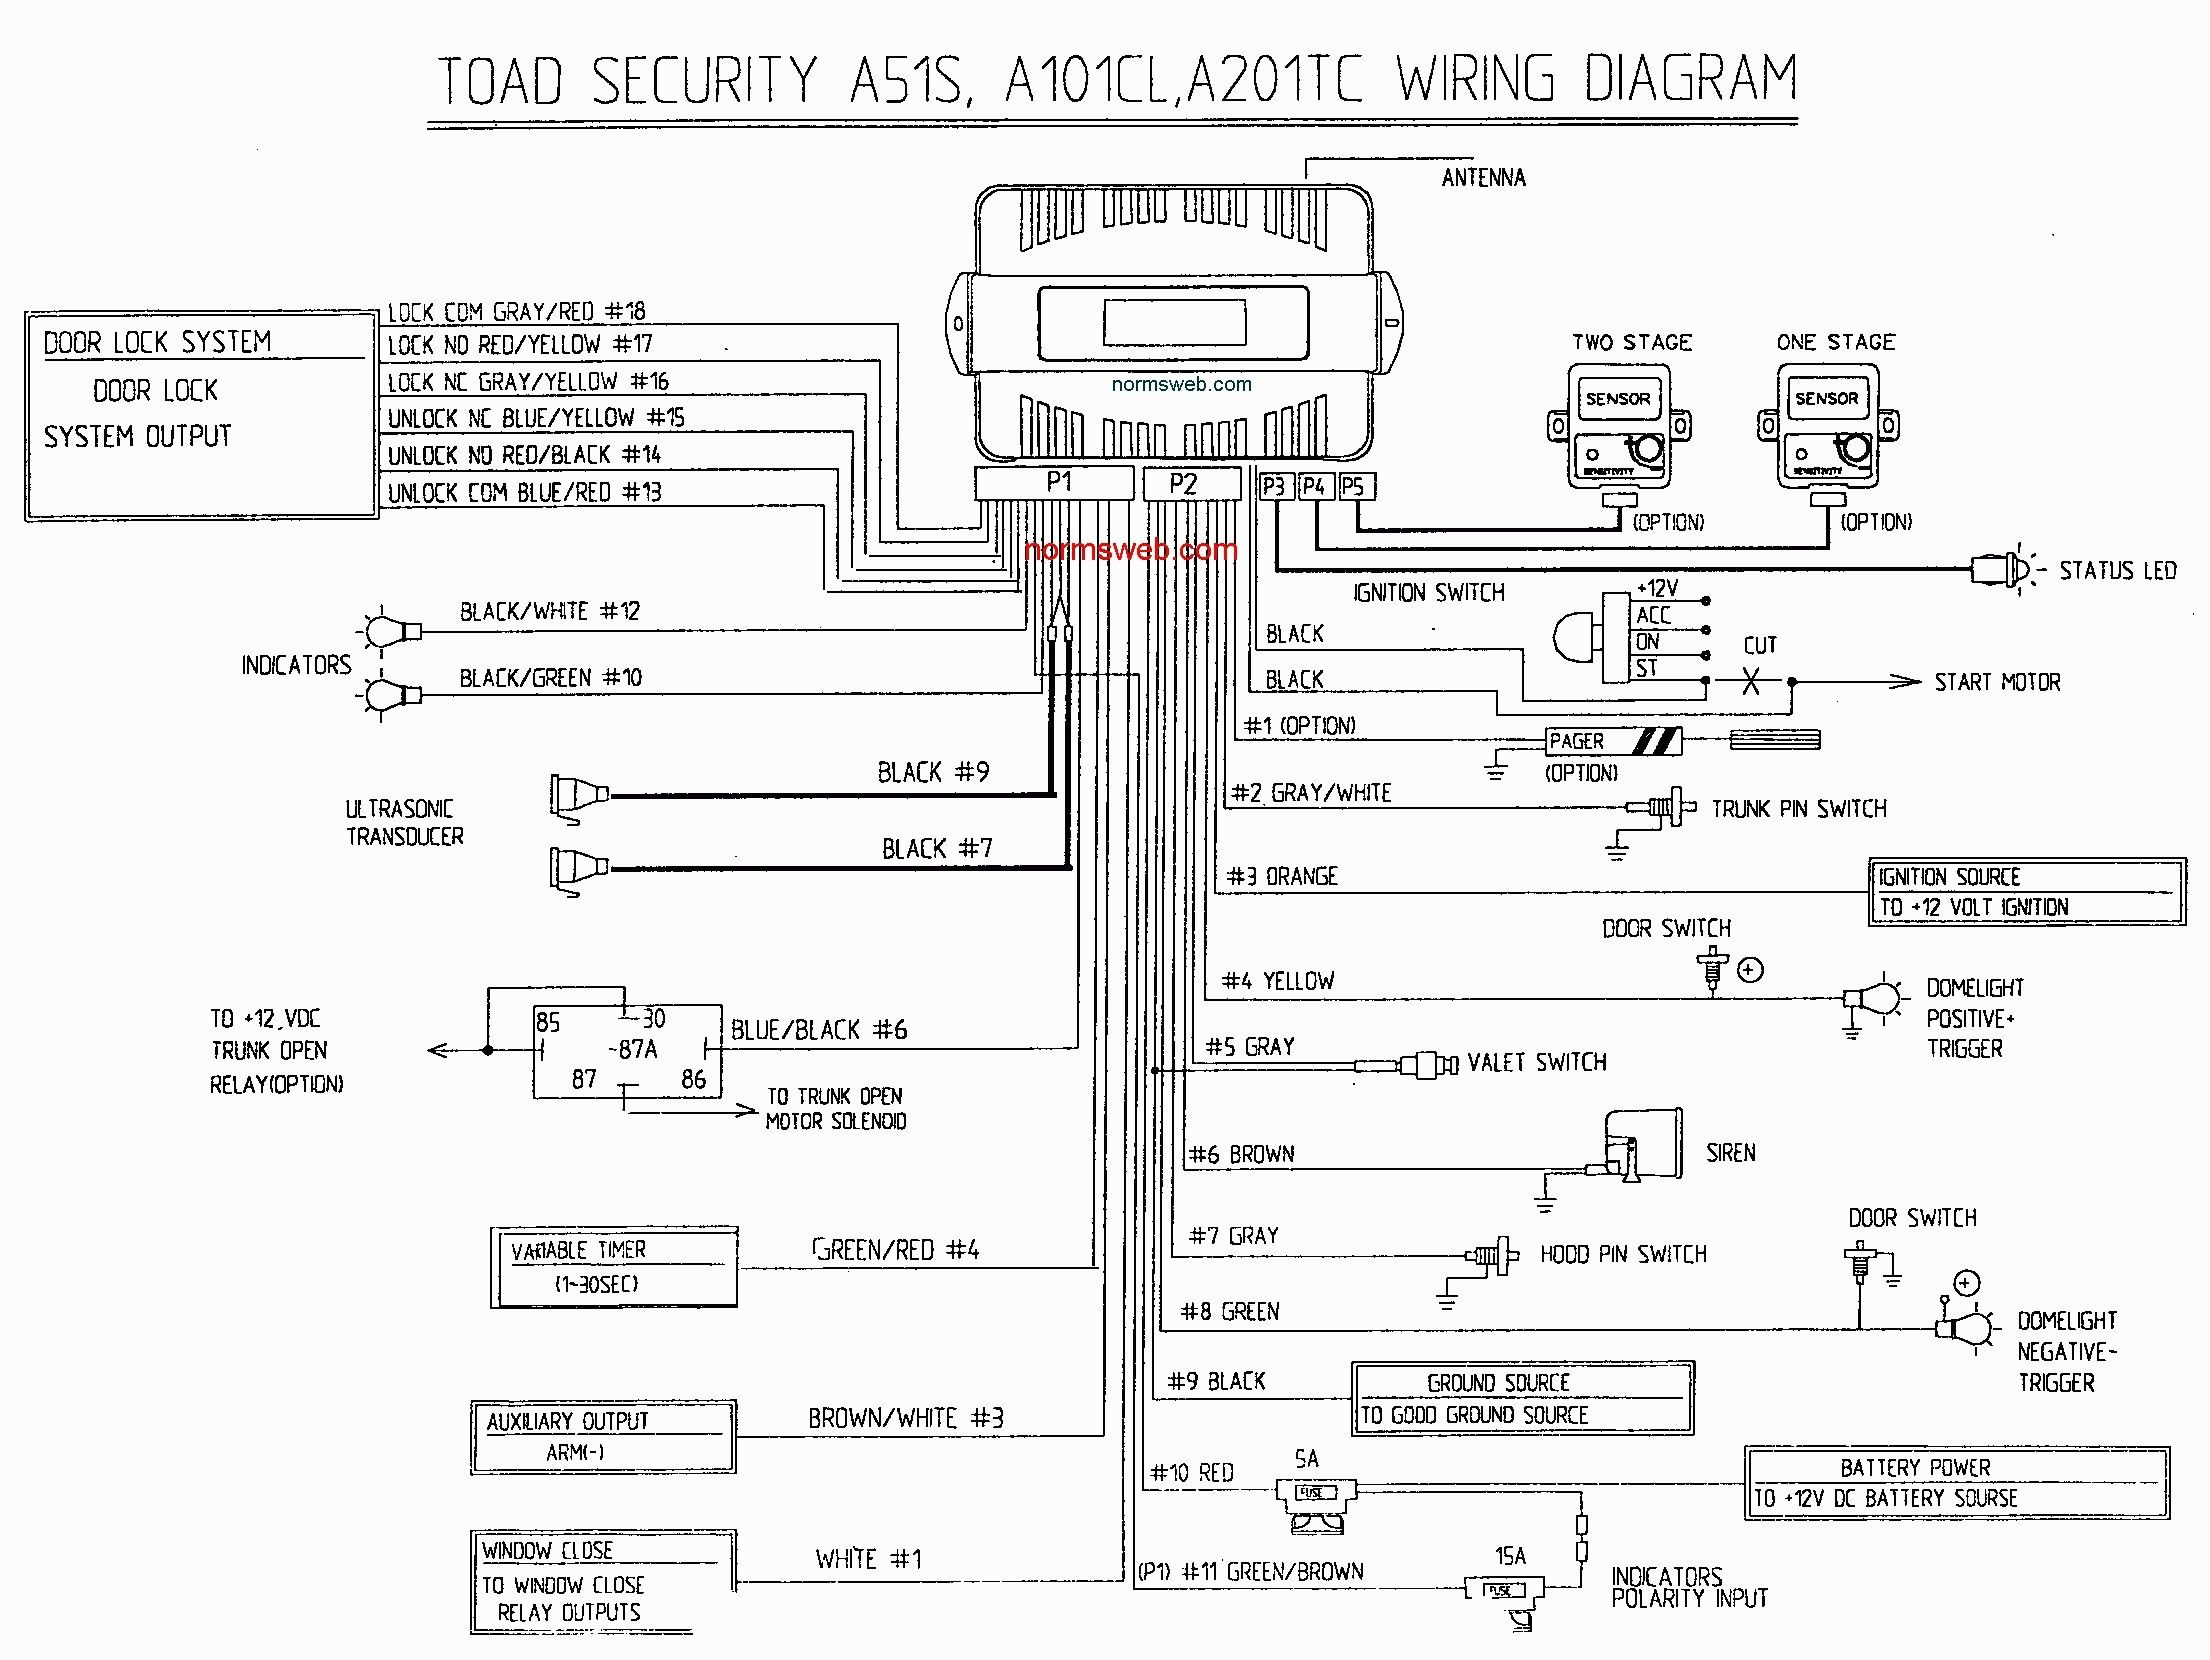 Viper 4105v Wiring Diagram Unique In 2020 Alarm Systems For Home Home Security Systems Car Alarm